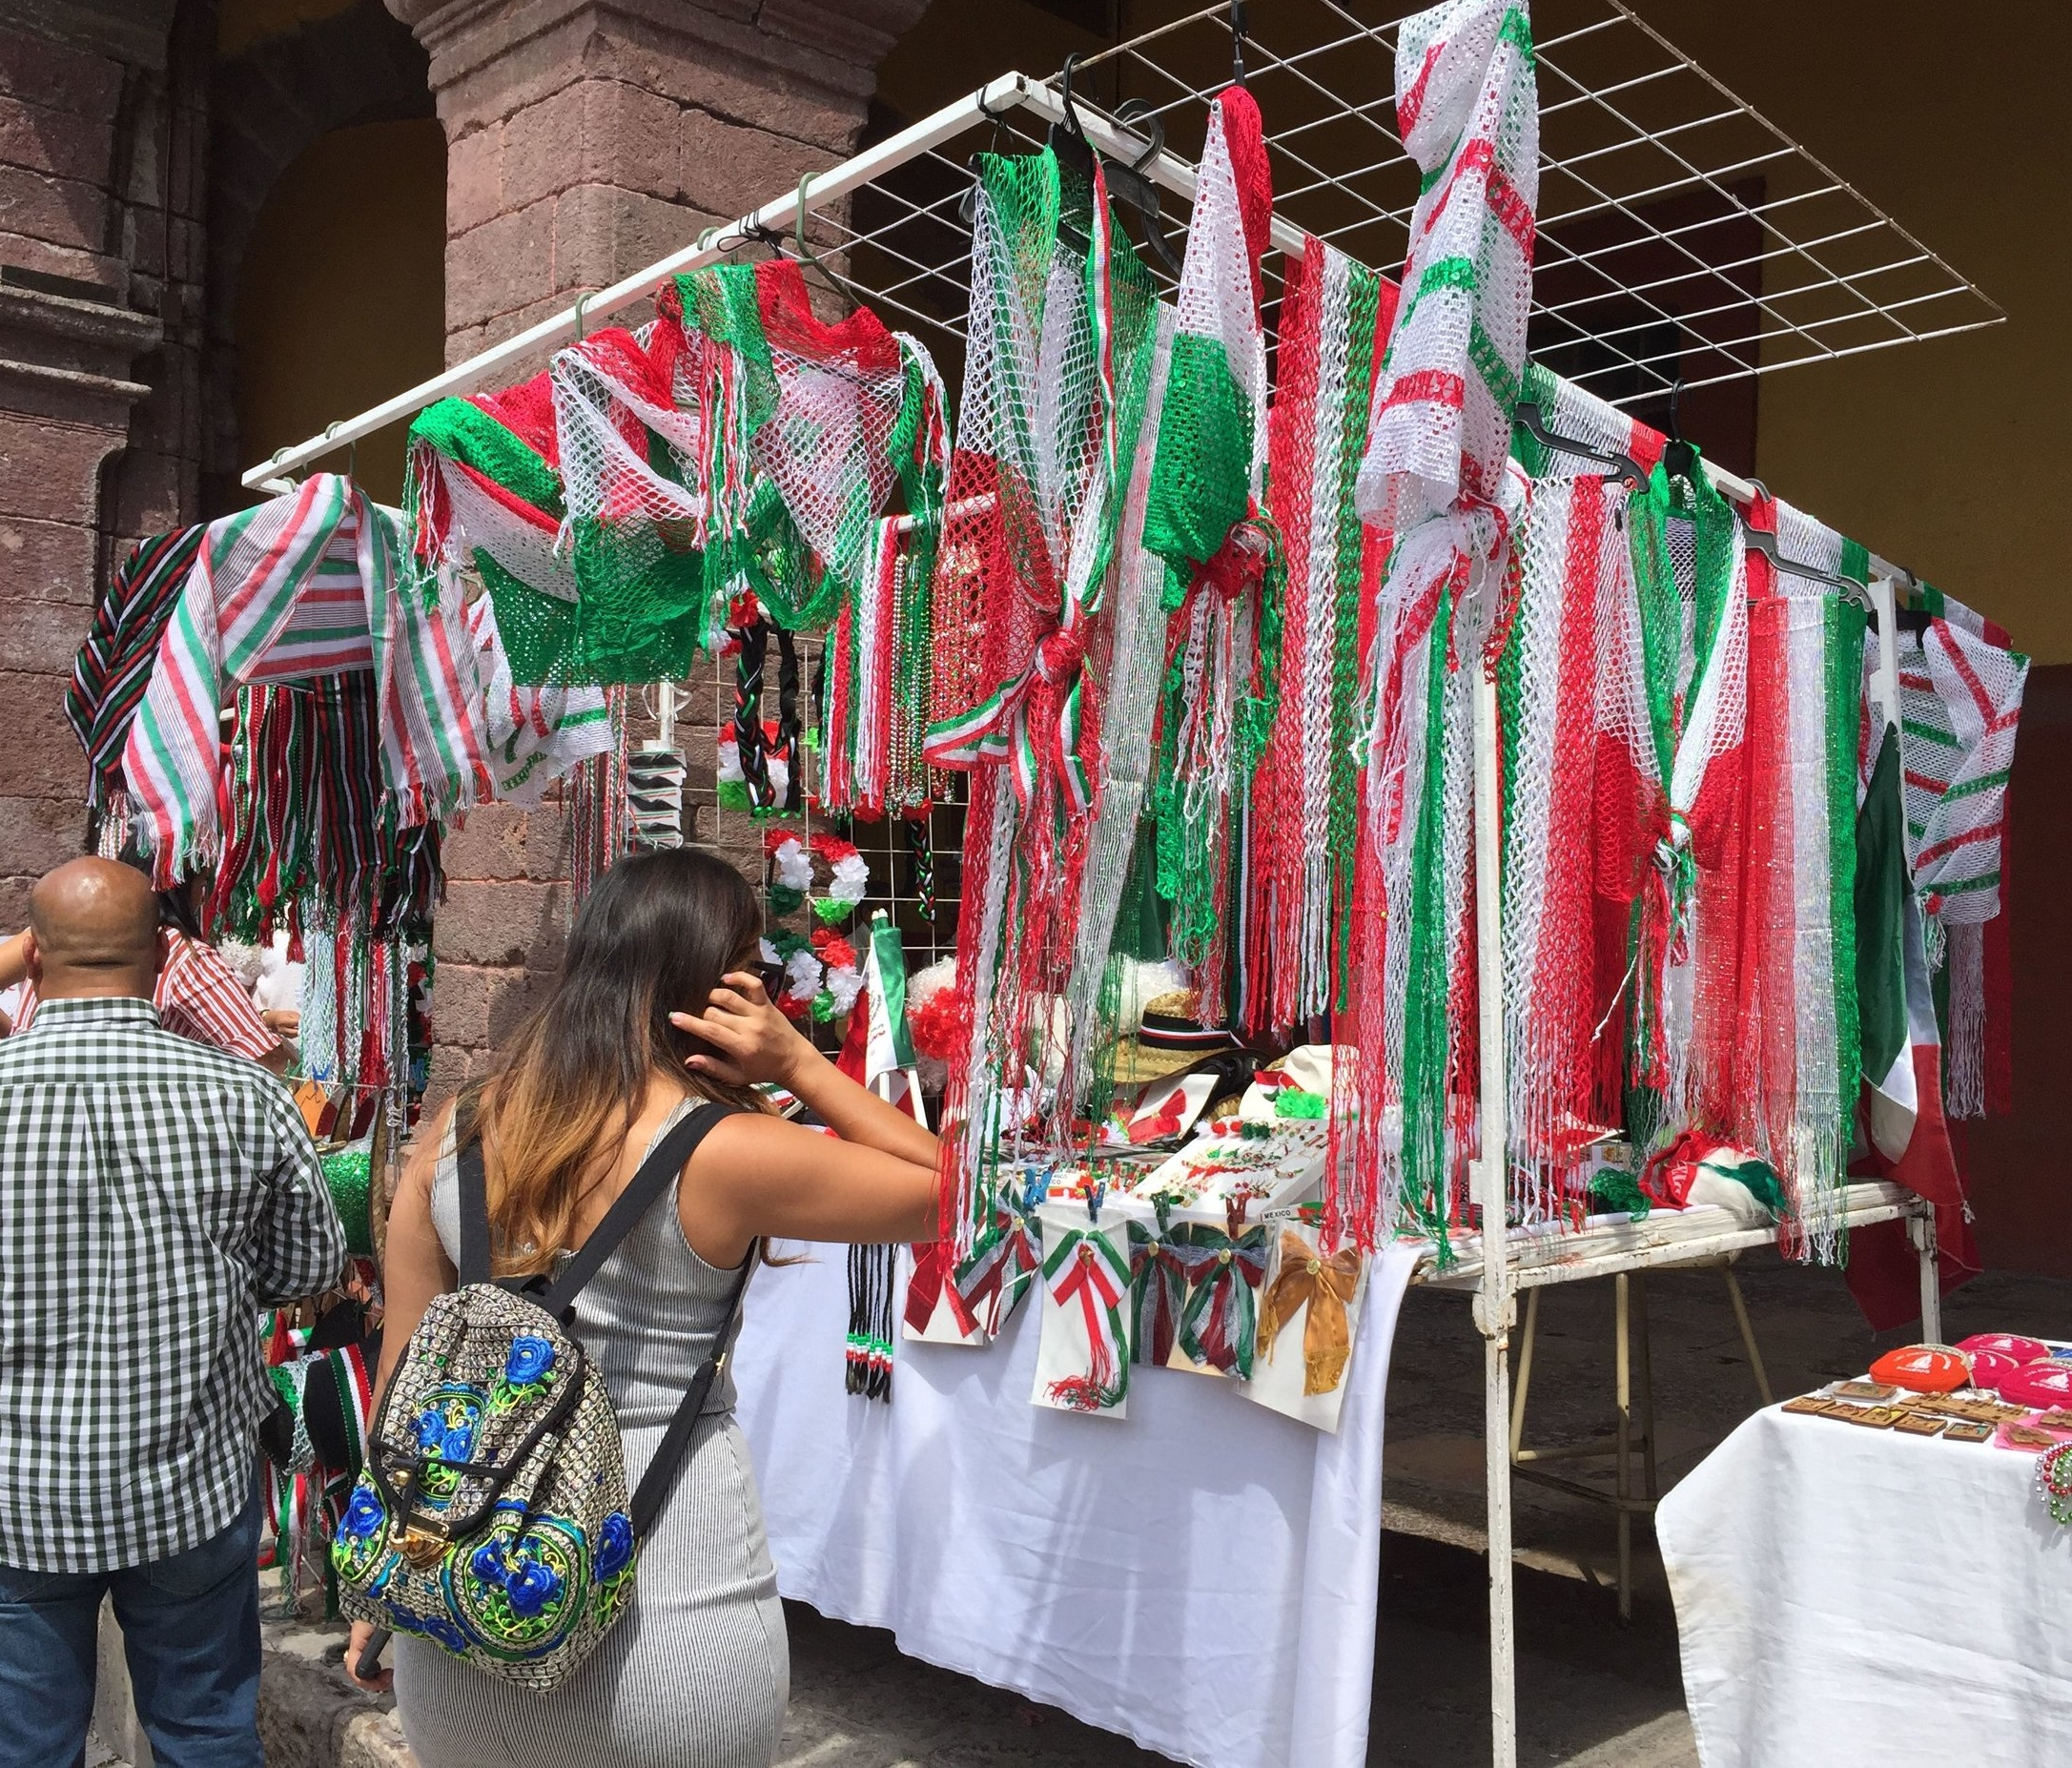 Many stands selling Mexican-flag themed trinkets pop-up around town on dates important to Mexican independence